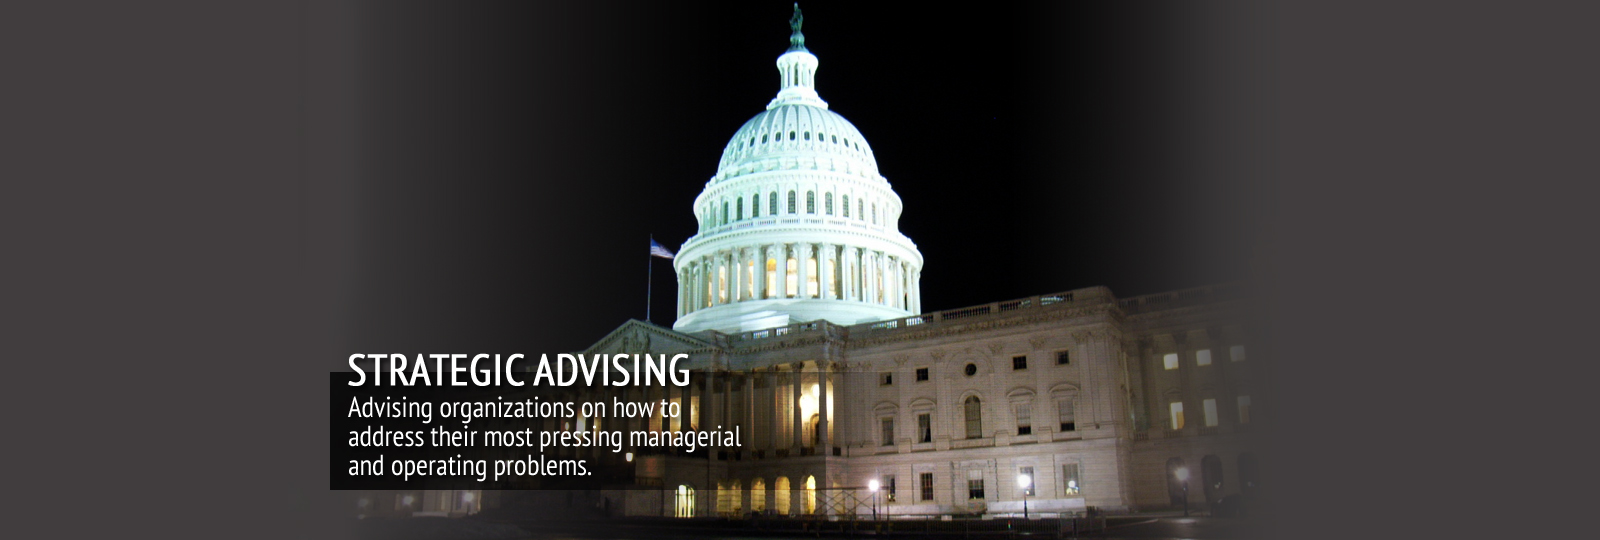 Slide 2 – Strategic Advising